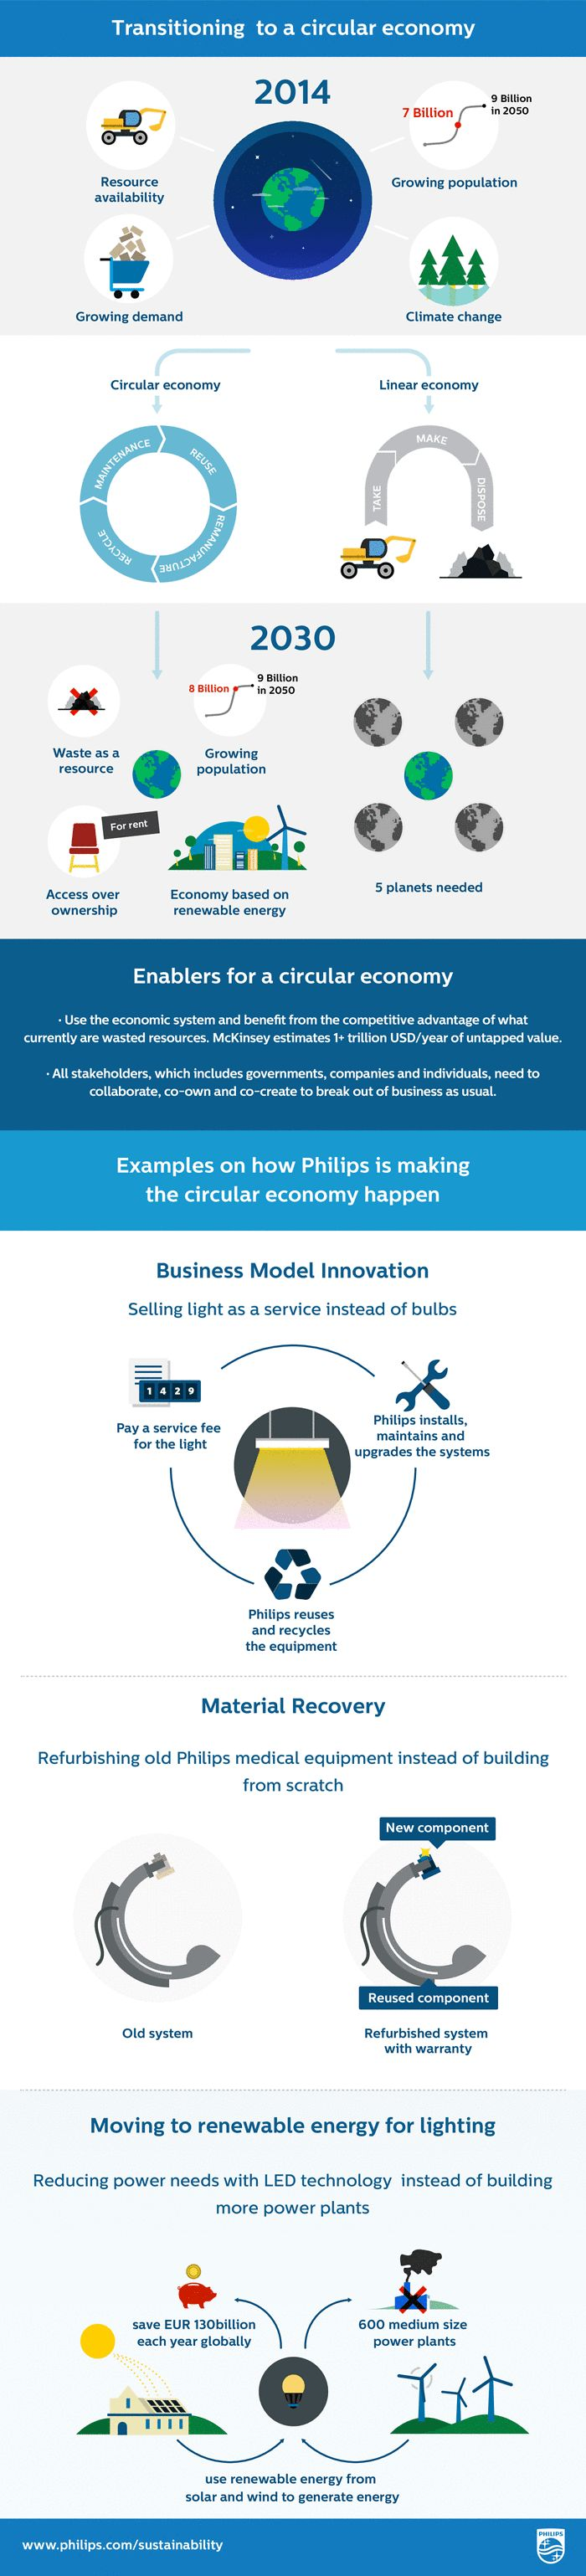 How to transition to a circular economy - infographic | Guardian Sustainable Business | theguardian.com